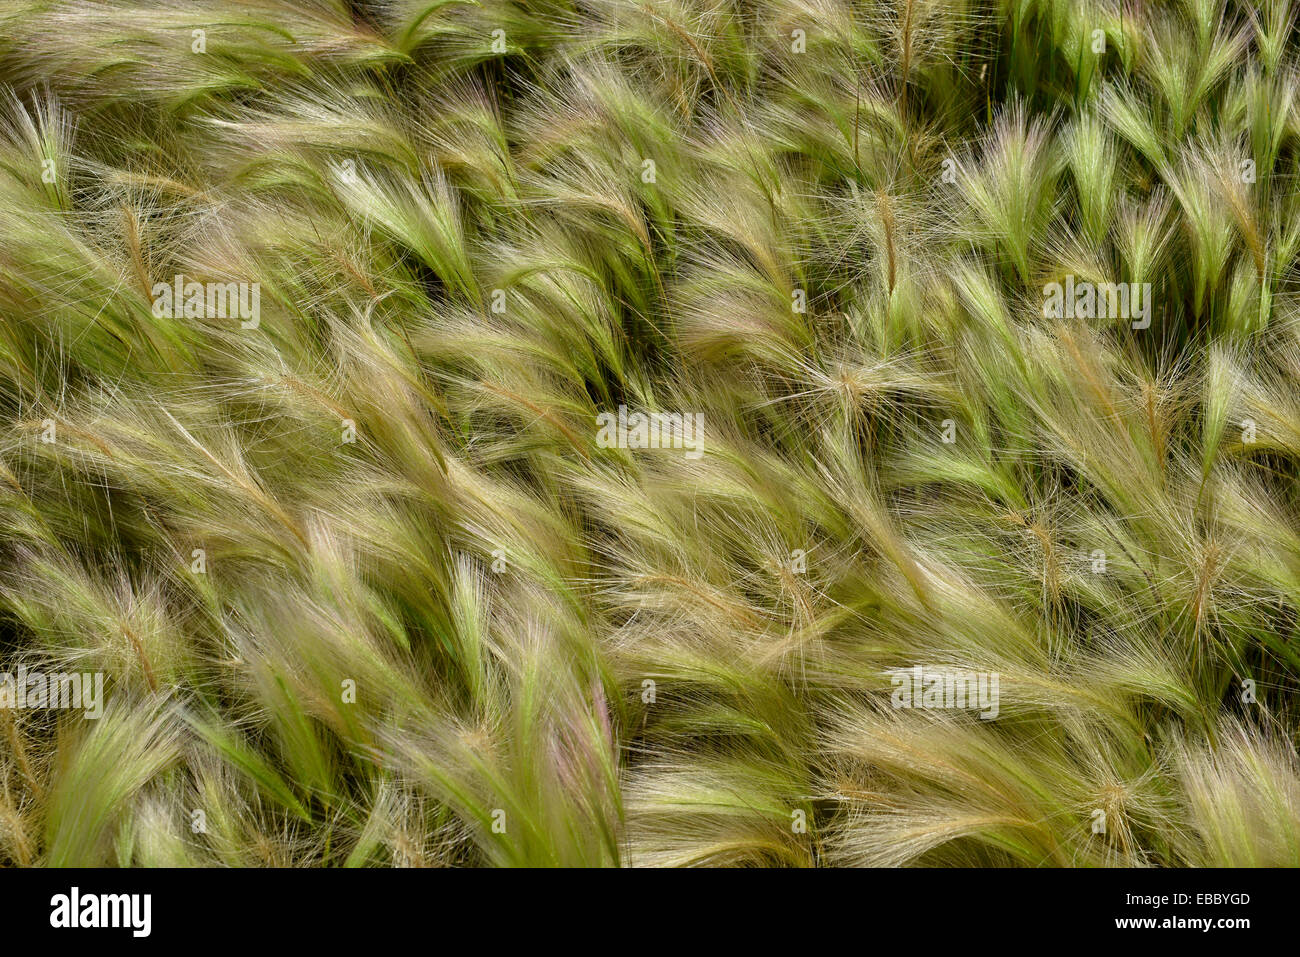 Close up of decorative grass used in a garden border - Stock Image